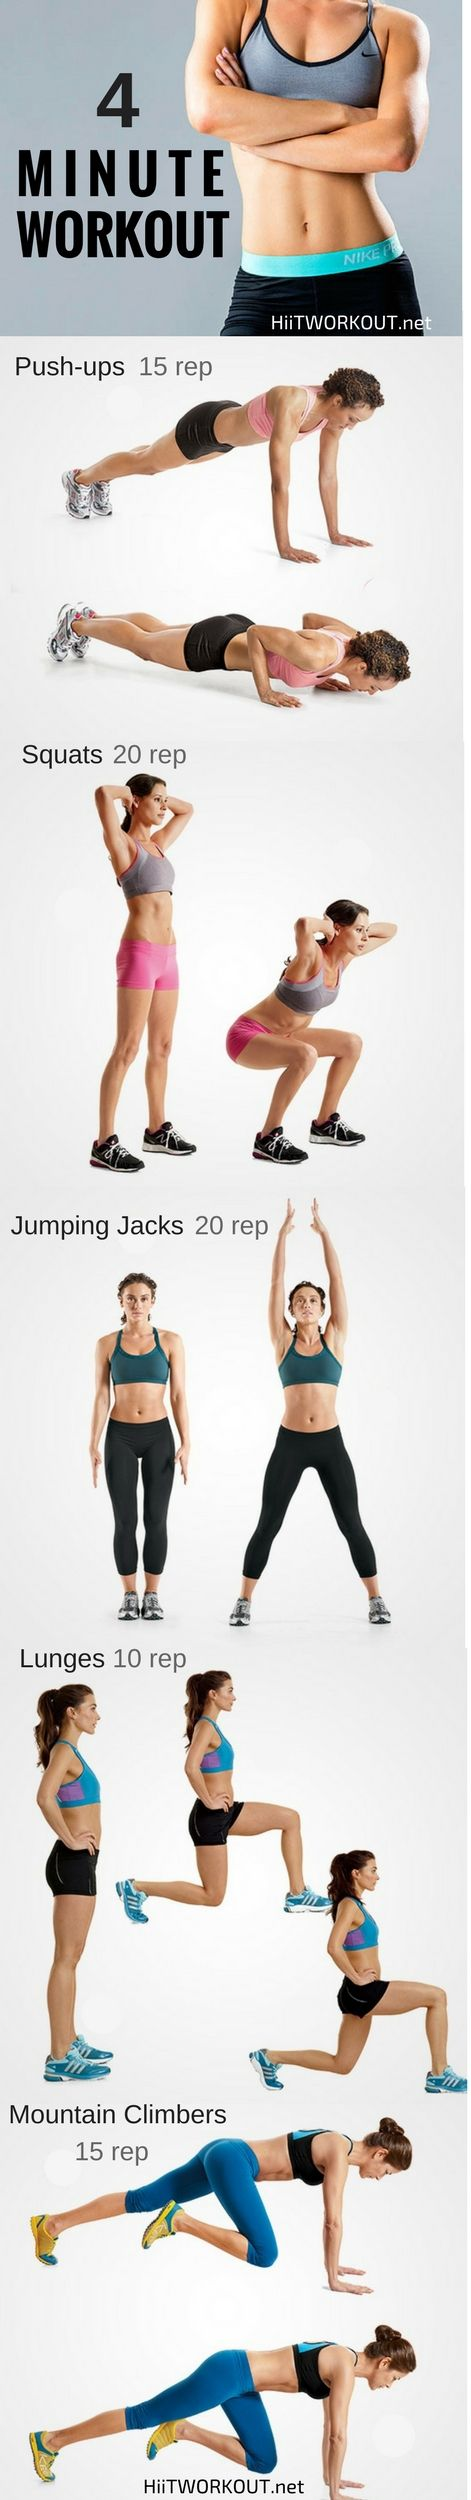 4 minutes a day is better than nothing at all.This kinds of repetitive workouts done at intervals is highly effective at burning lots of calories in a short amount of time.